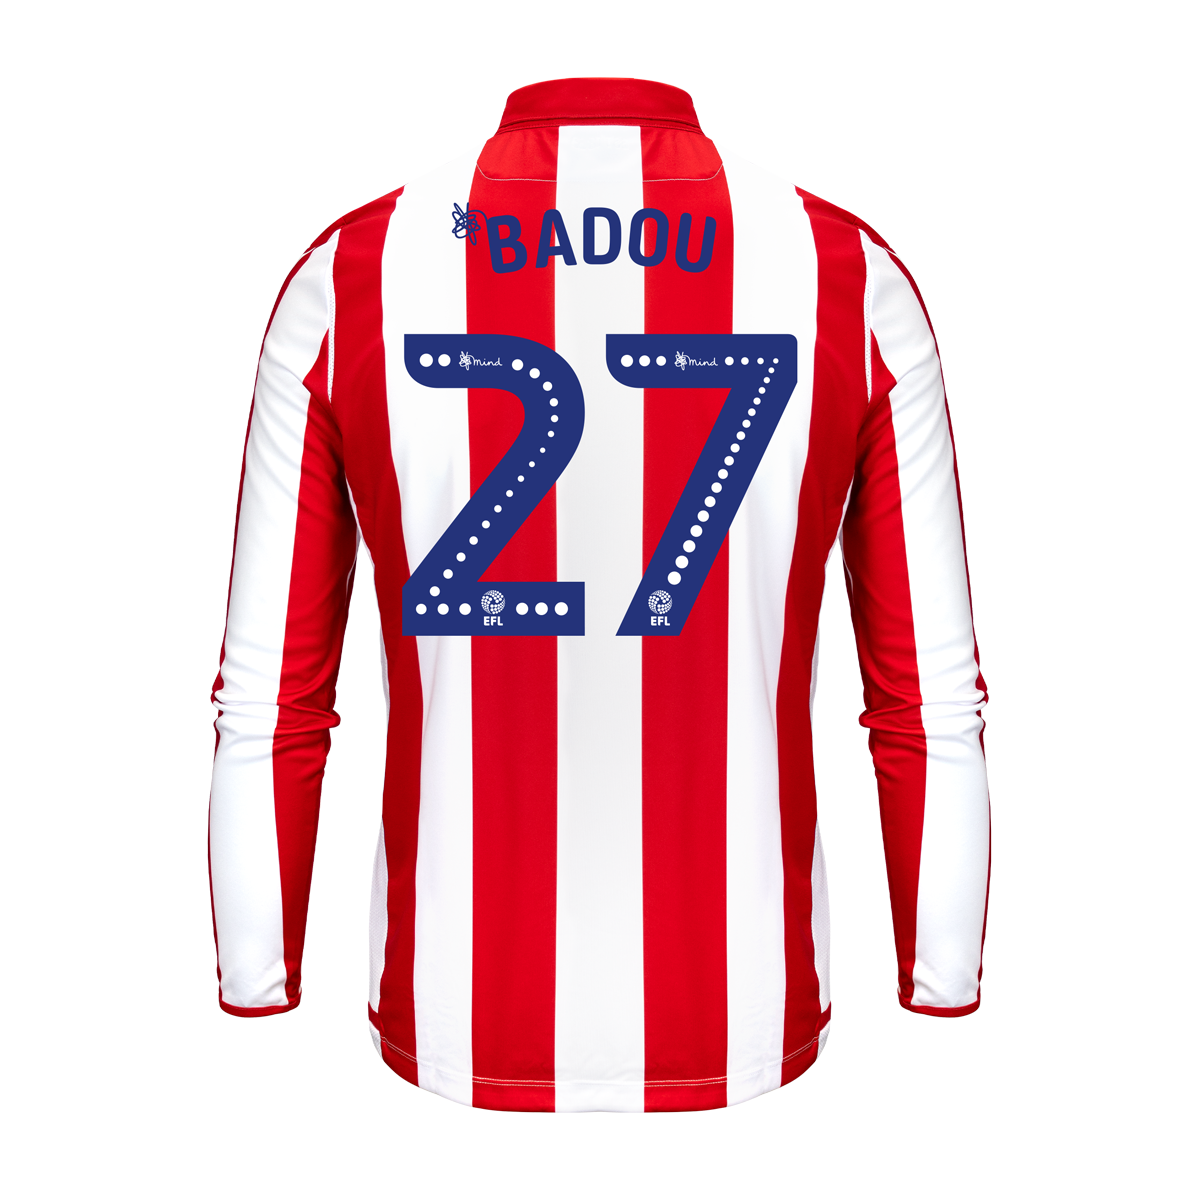 2019/20 Adult Home LS Shirt - Badou